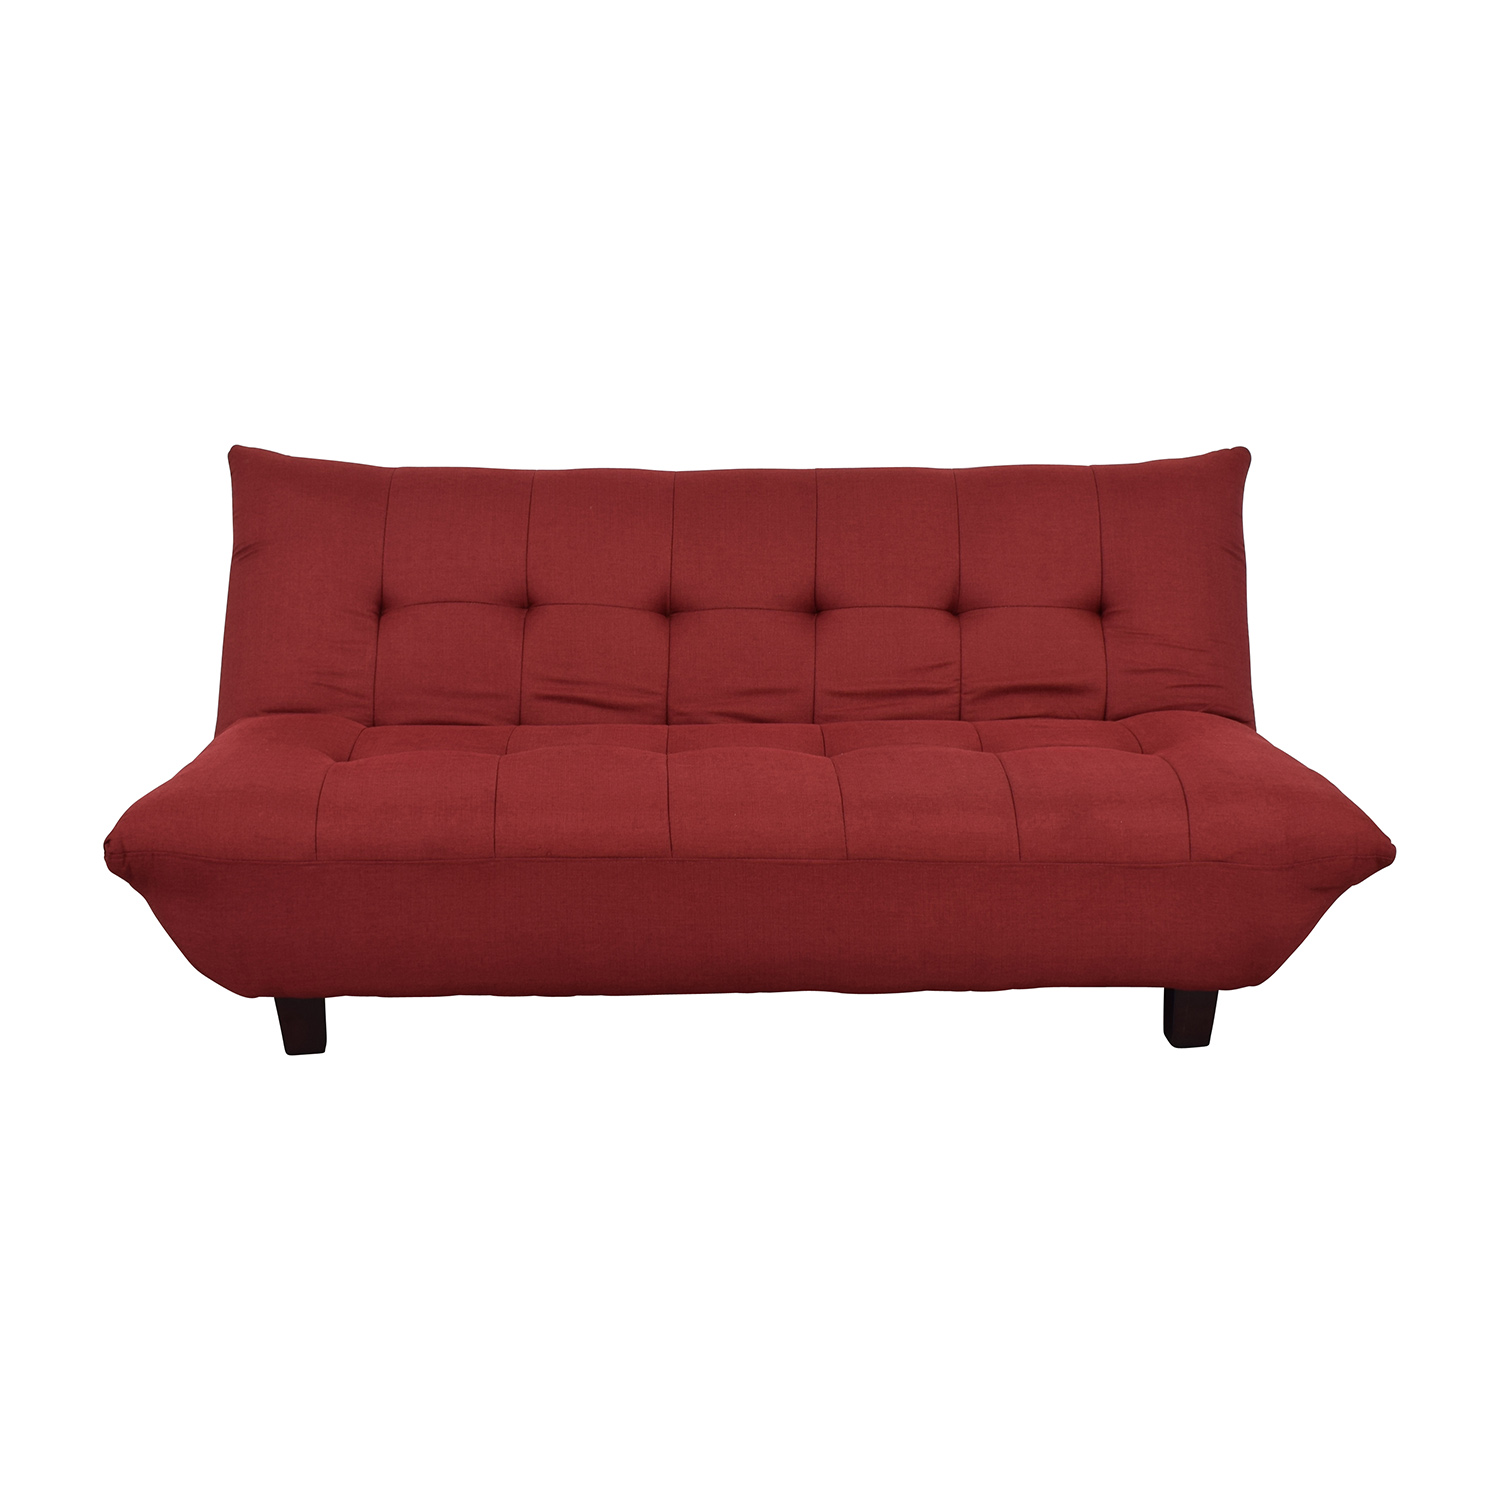 buy Red Tufted Futon Sofa Bed  Classic Sofas